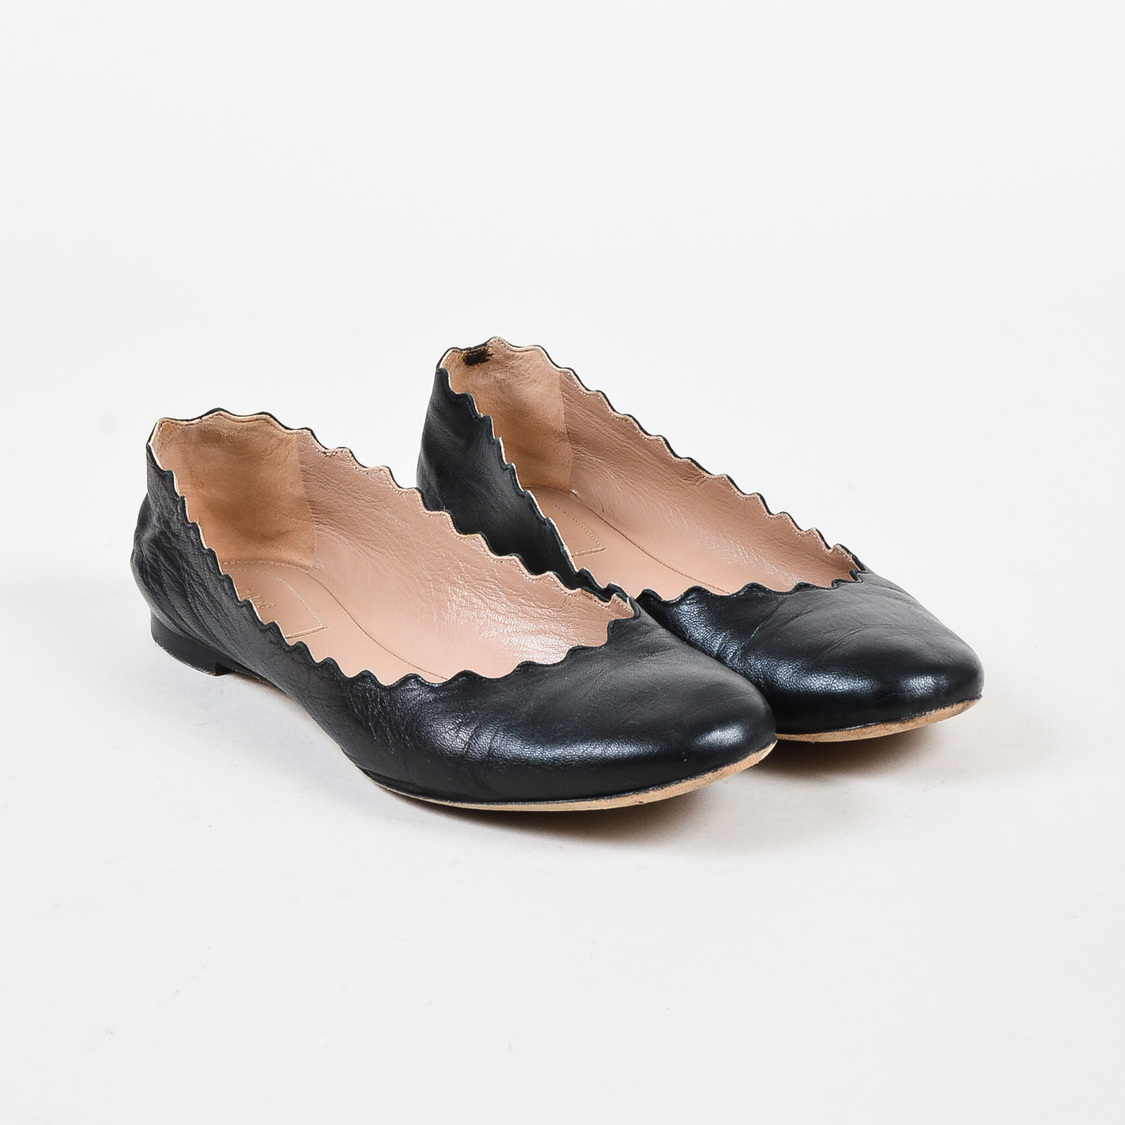 Ballet Flats Ballerina Shoes for Women On Sale, Black, Leather, 2017, 2.5 3 3.5 4.5 5.5 7.5 Chlo